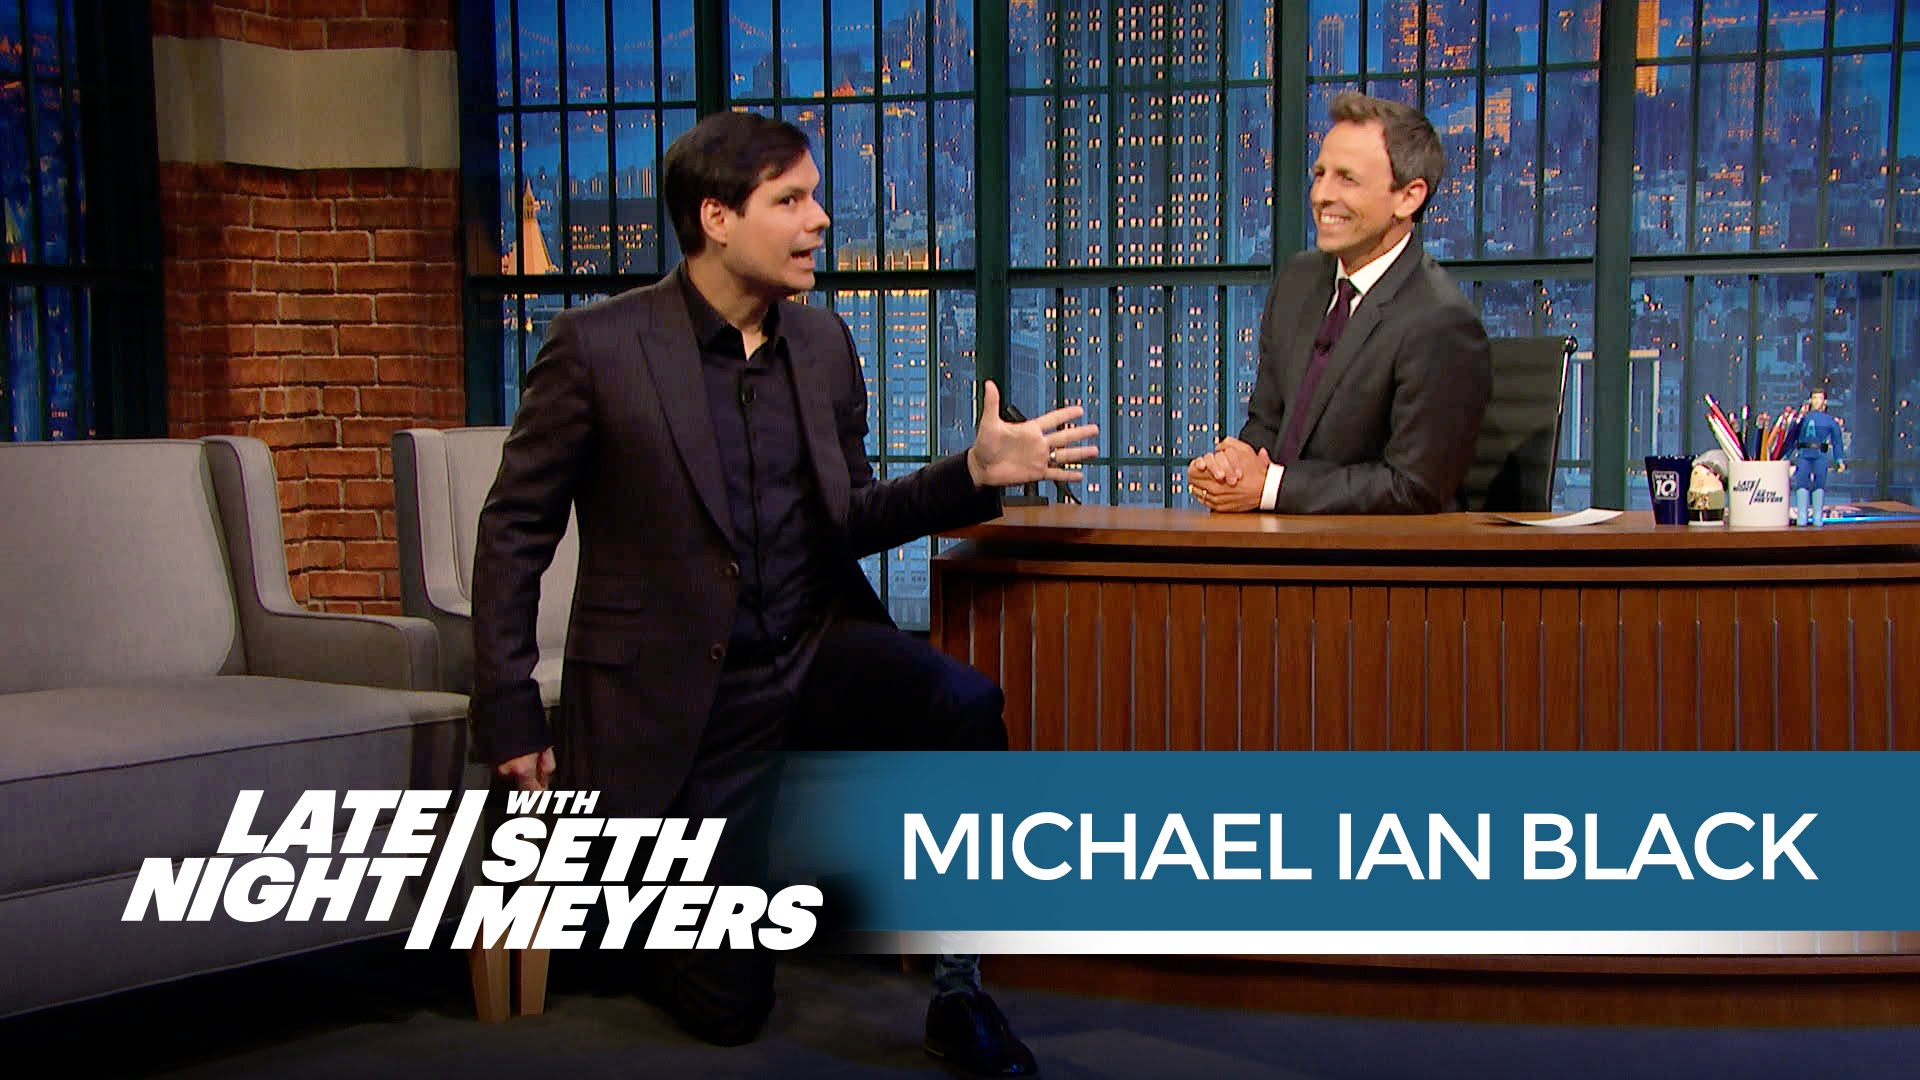 Michael Ian Black announces June 8 show at The Showbox